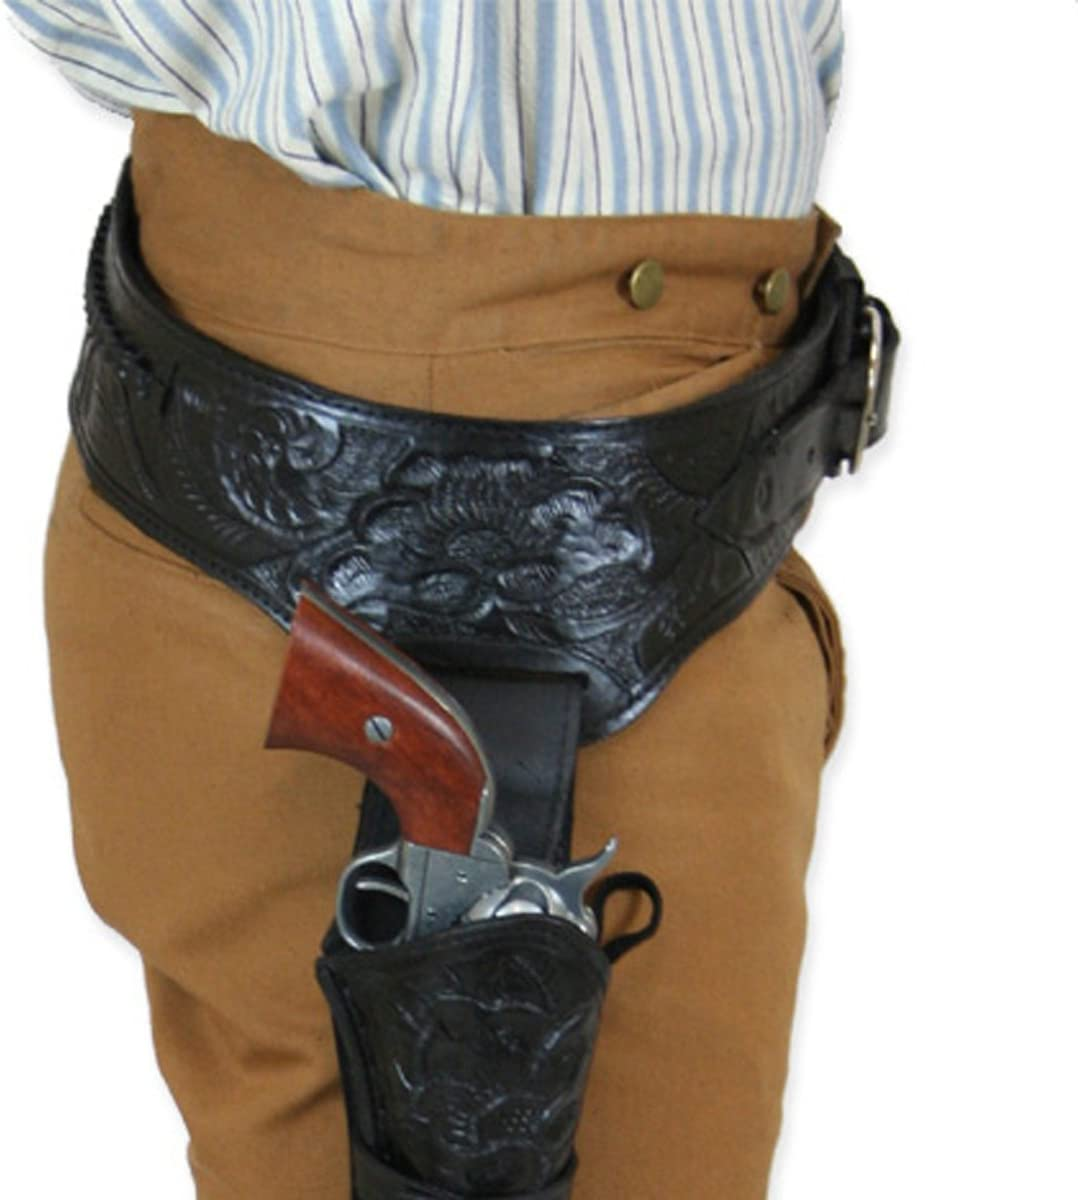 Historical Max 60% OFF Emporium Men's Right Hand Tooled Leather Gun Phoenix Mall Western